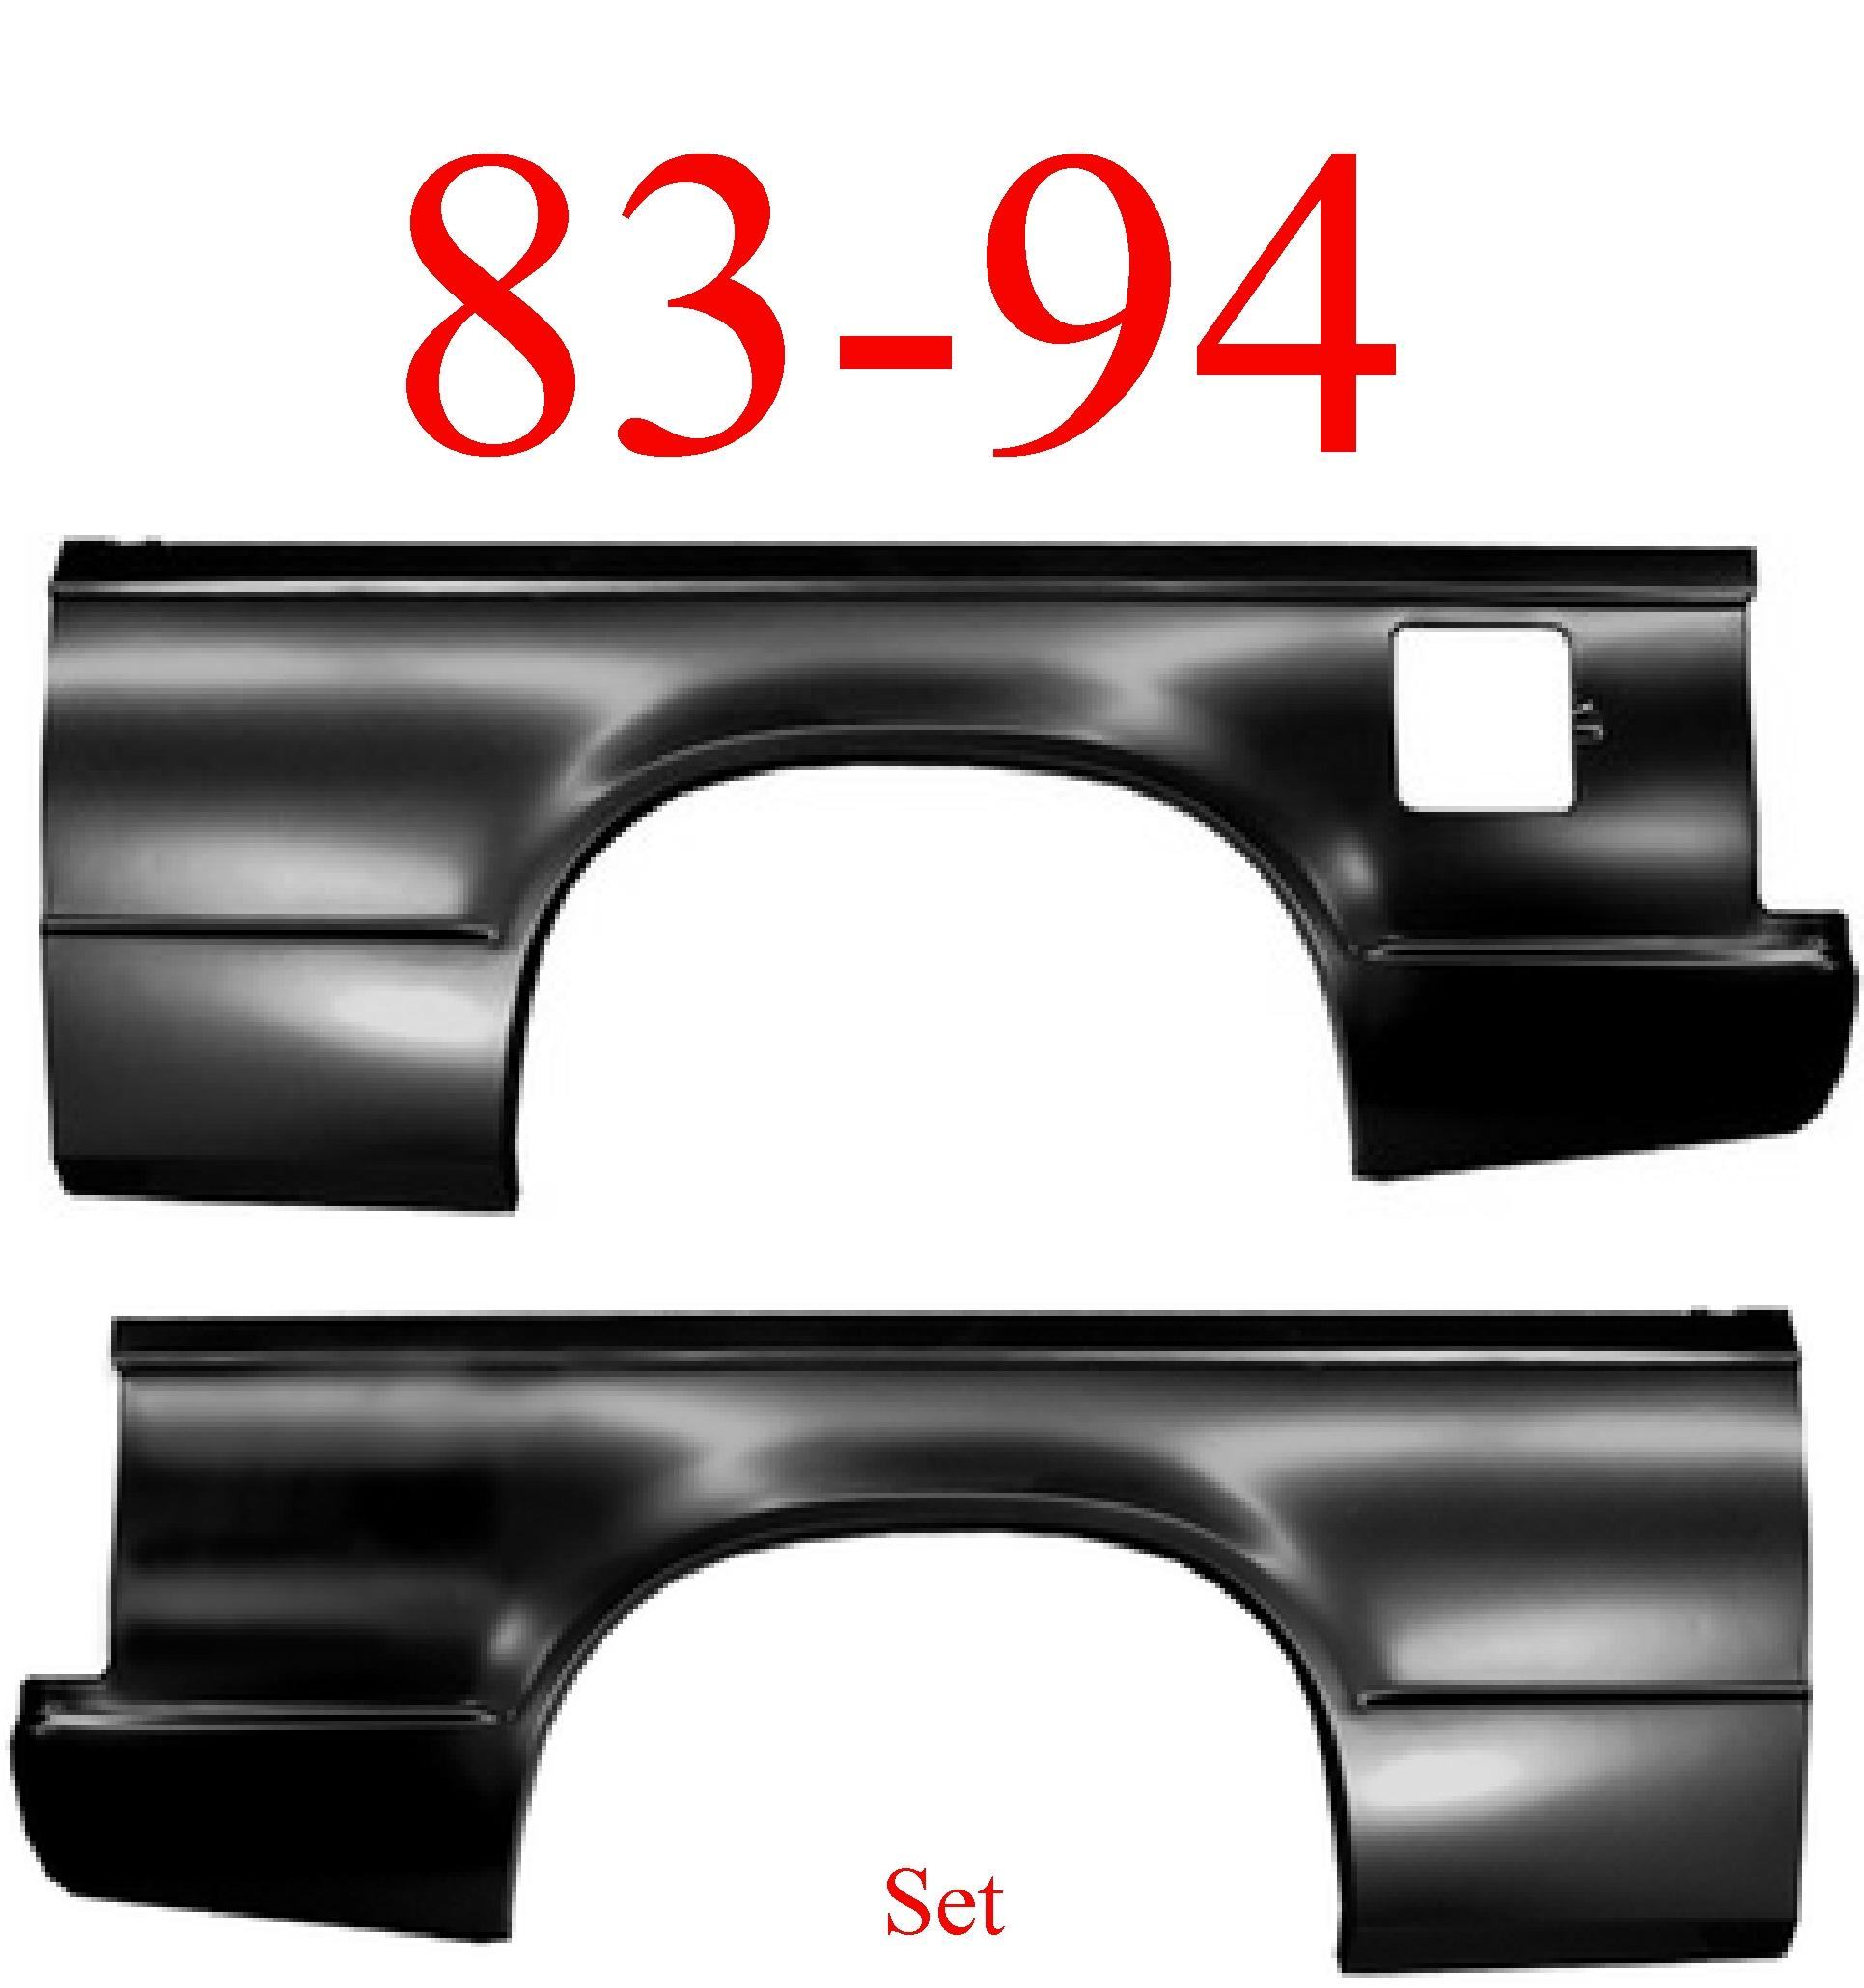 83-94 Chevy S10 Blazer Quarter Panel Set 2 Door